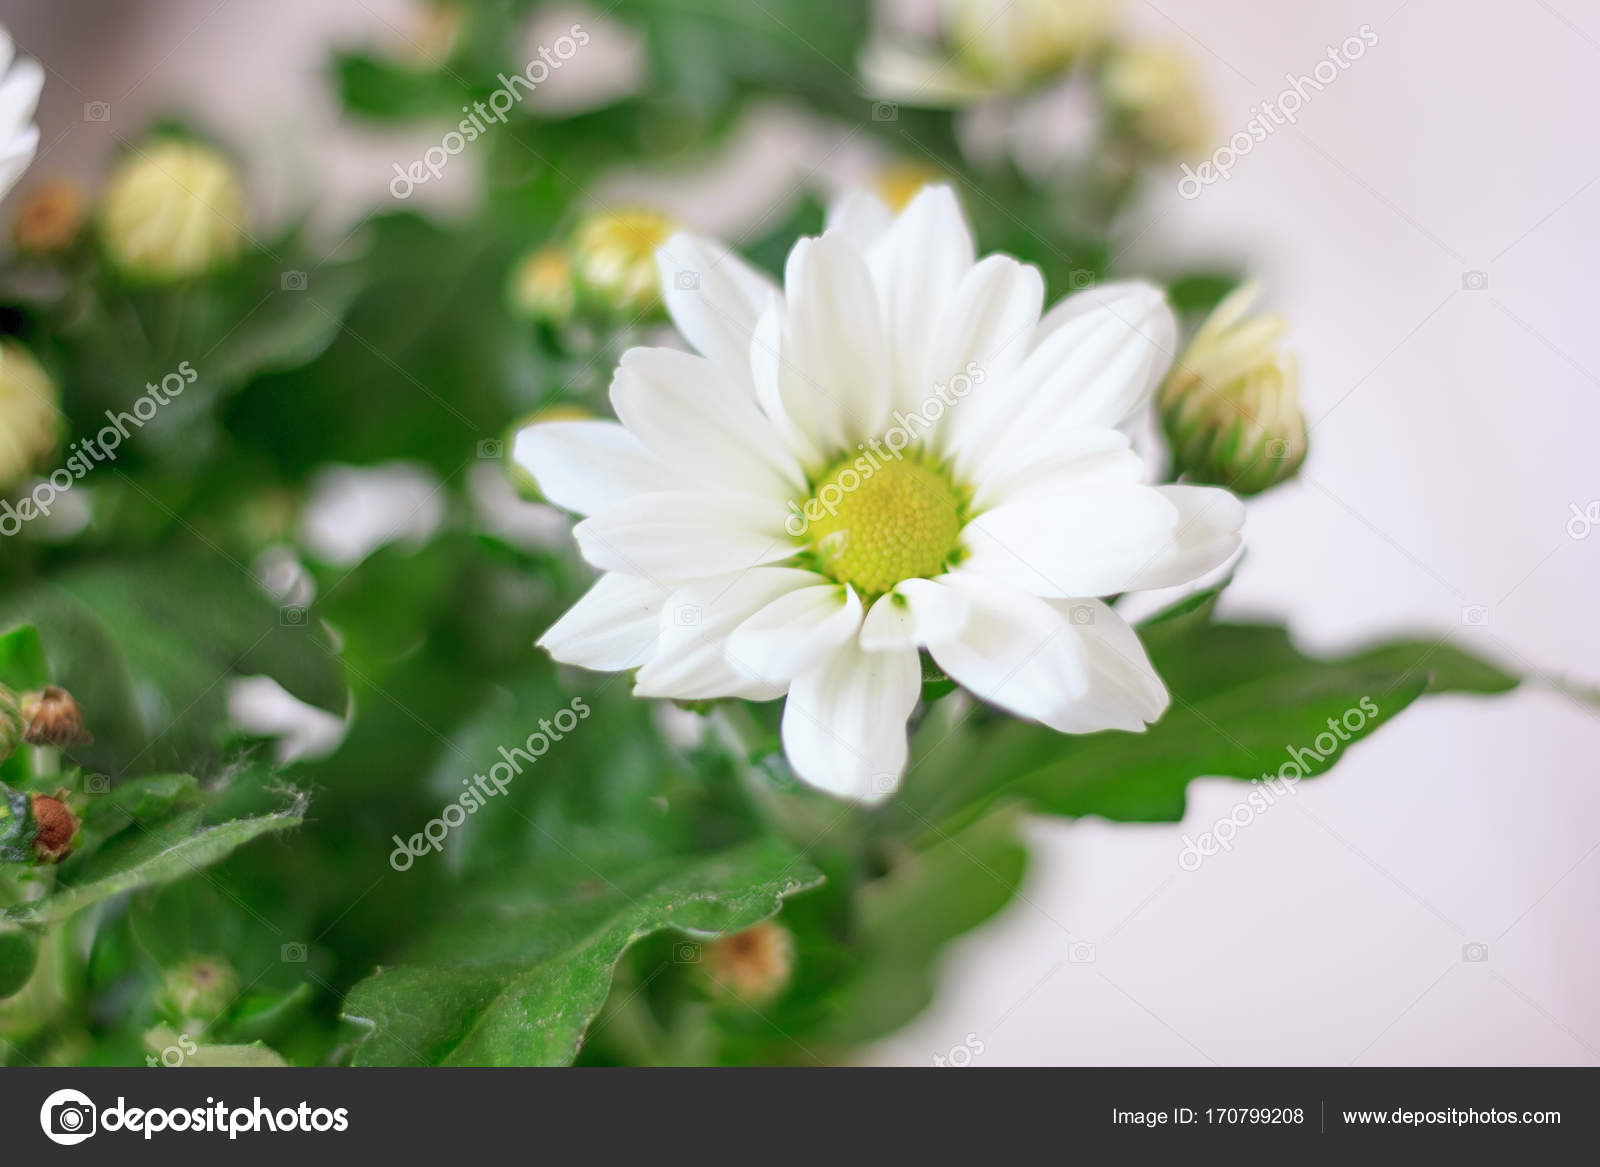 Chrysanthemum Plant As Home Plant White Flowers And Beautiful